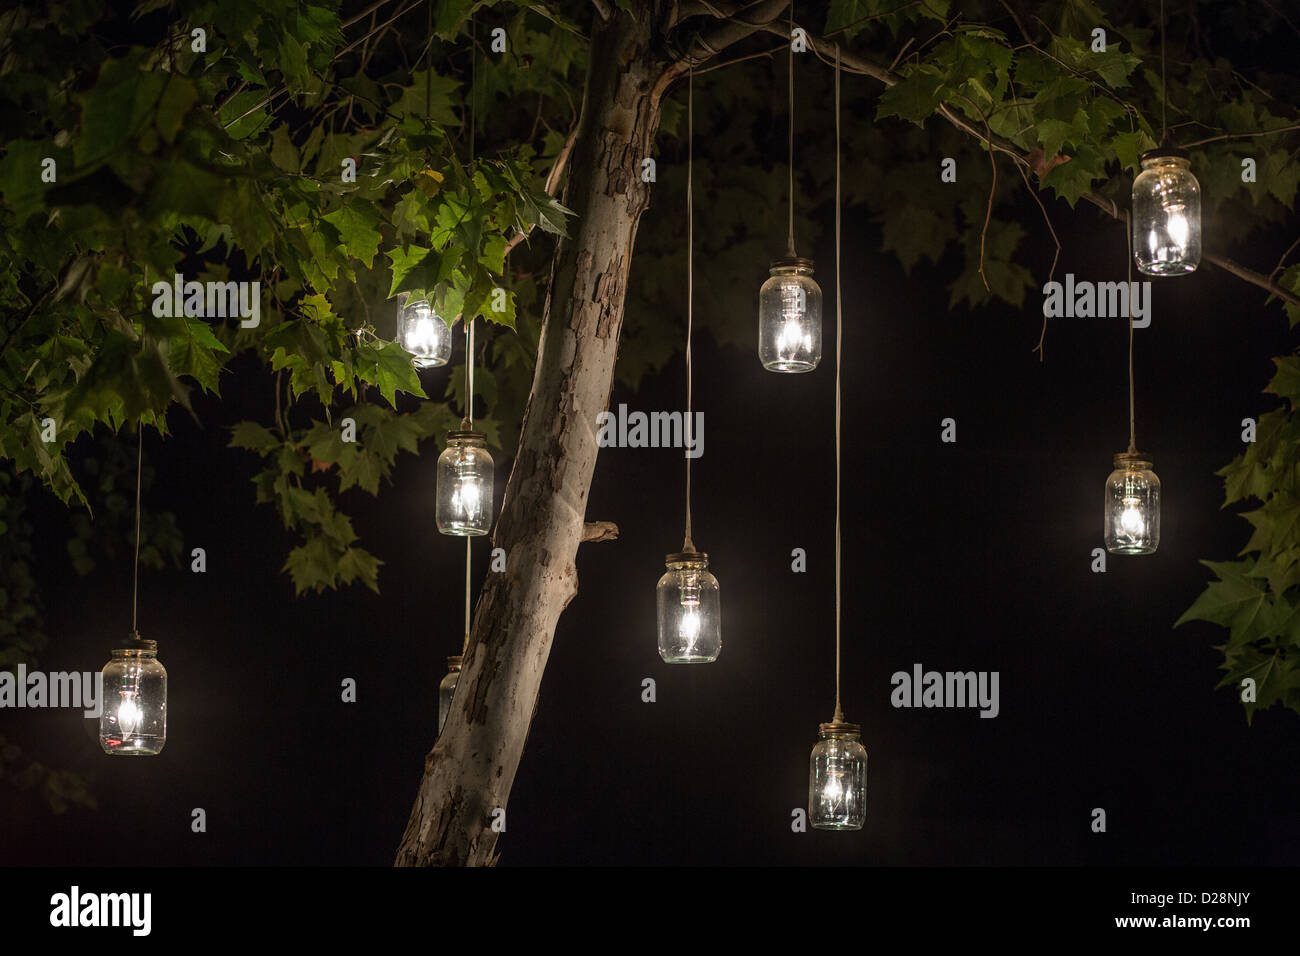 Glowing mason jar lights hanging from a tree stock photo for How to hang string lights without trees